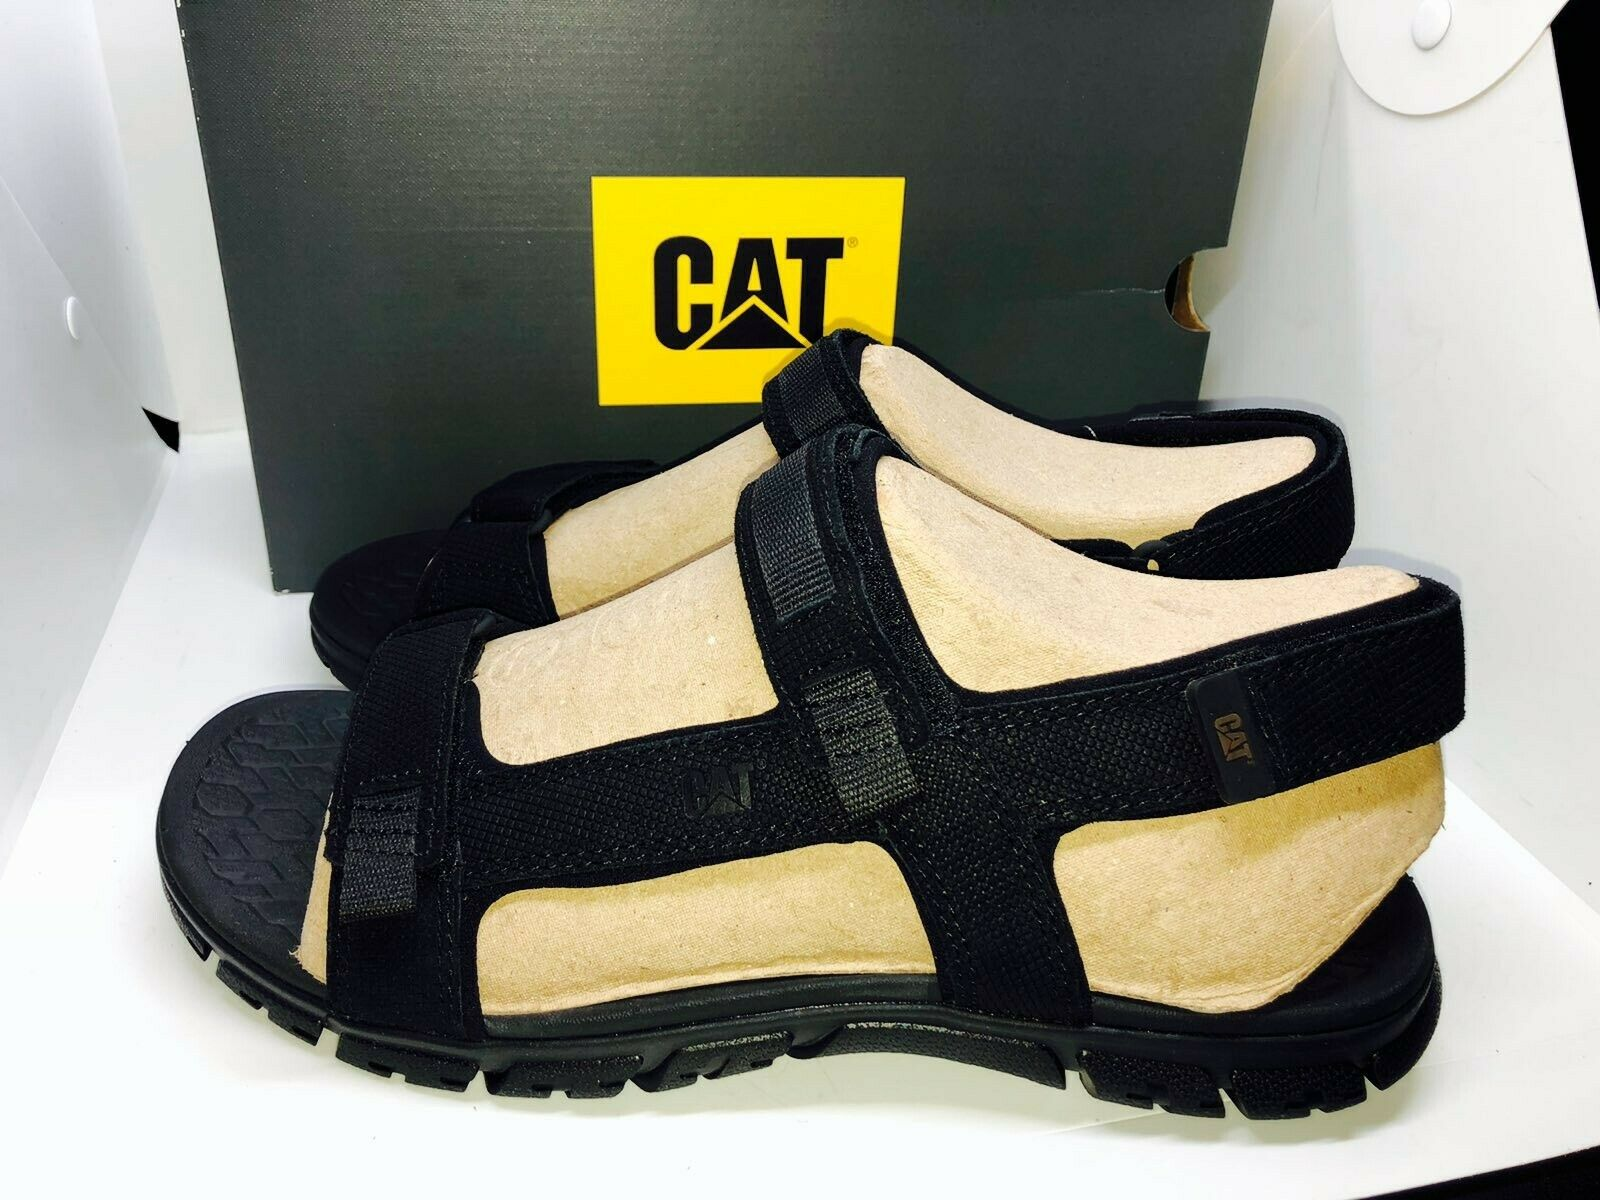 RRP: Brand New Caterpillar Atchison Black Leather Sandals Size 10/44